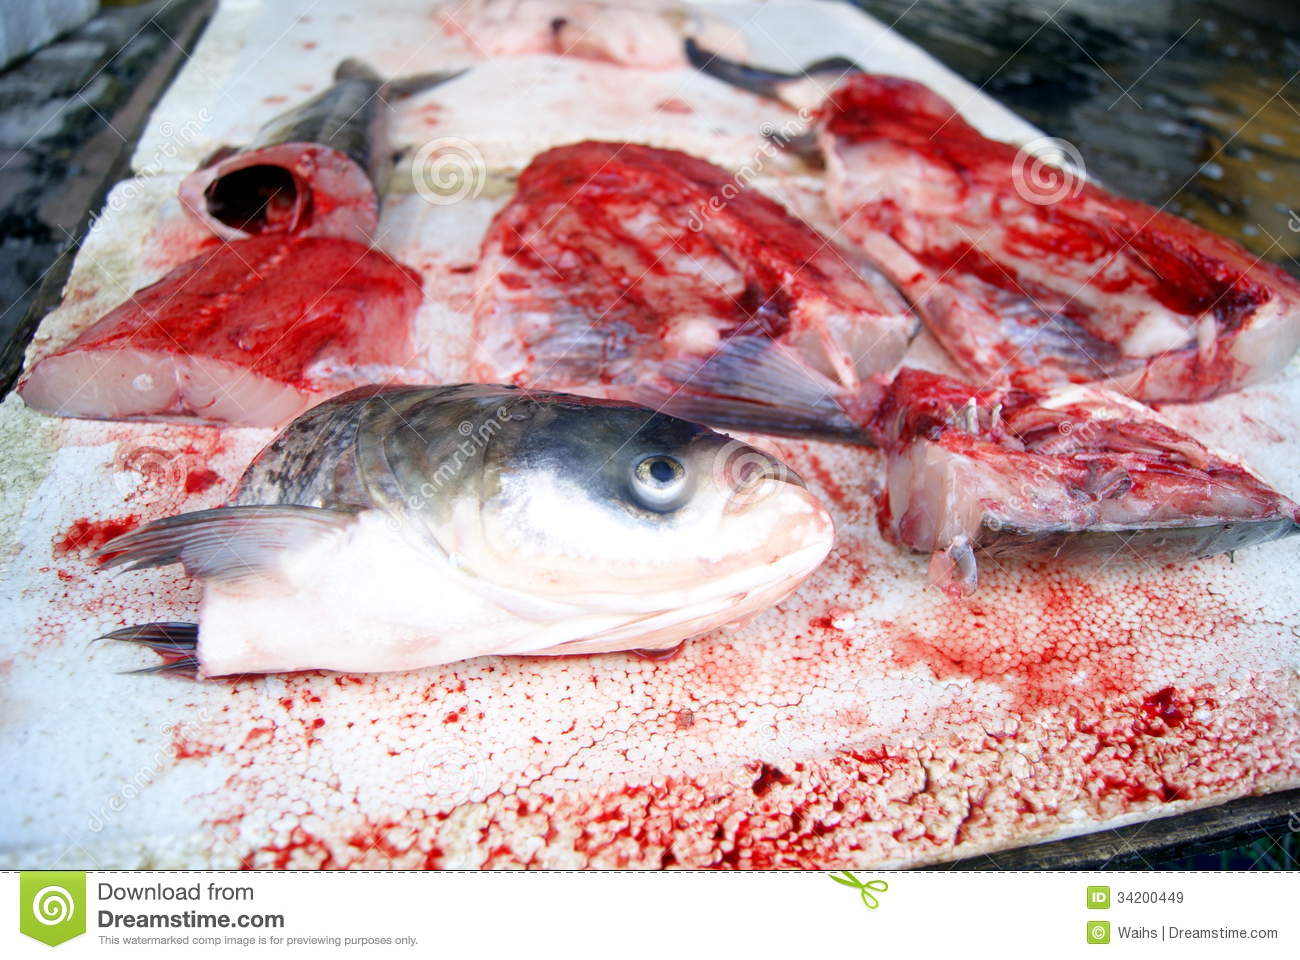 Fish heads and fish meat royalty free stock images image for Is fish considered meat